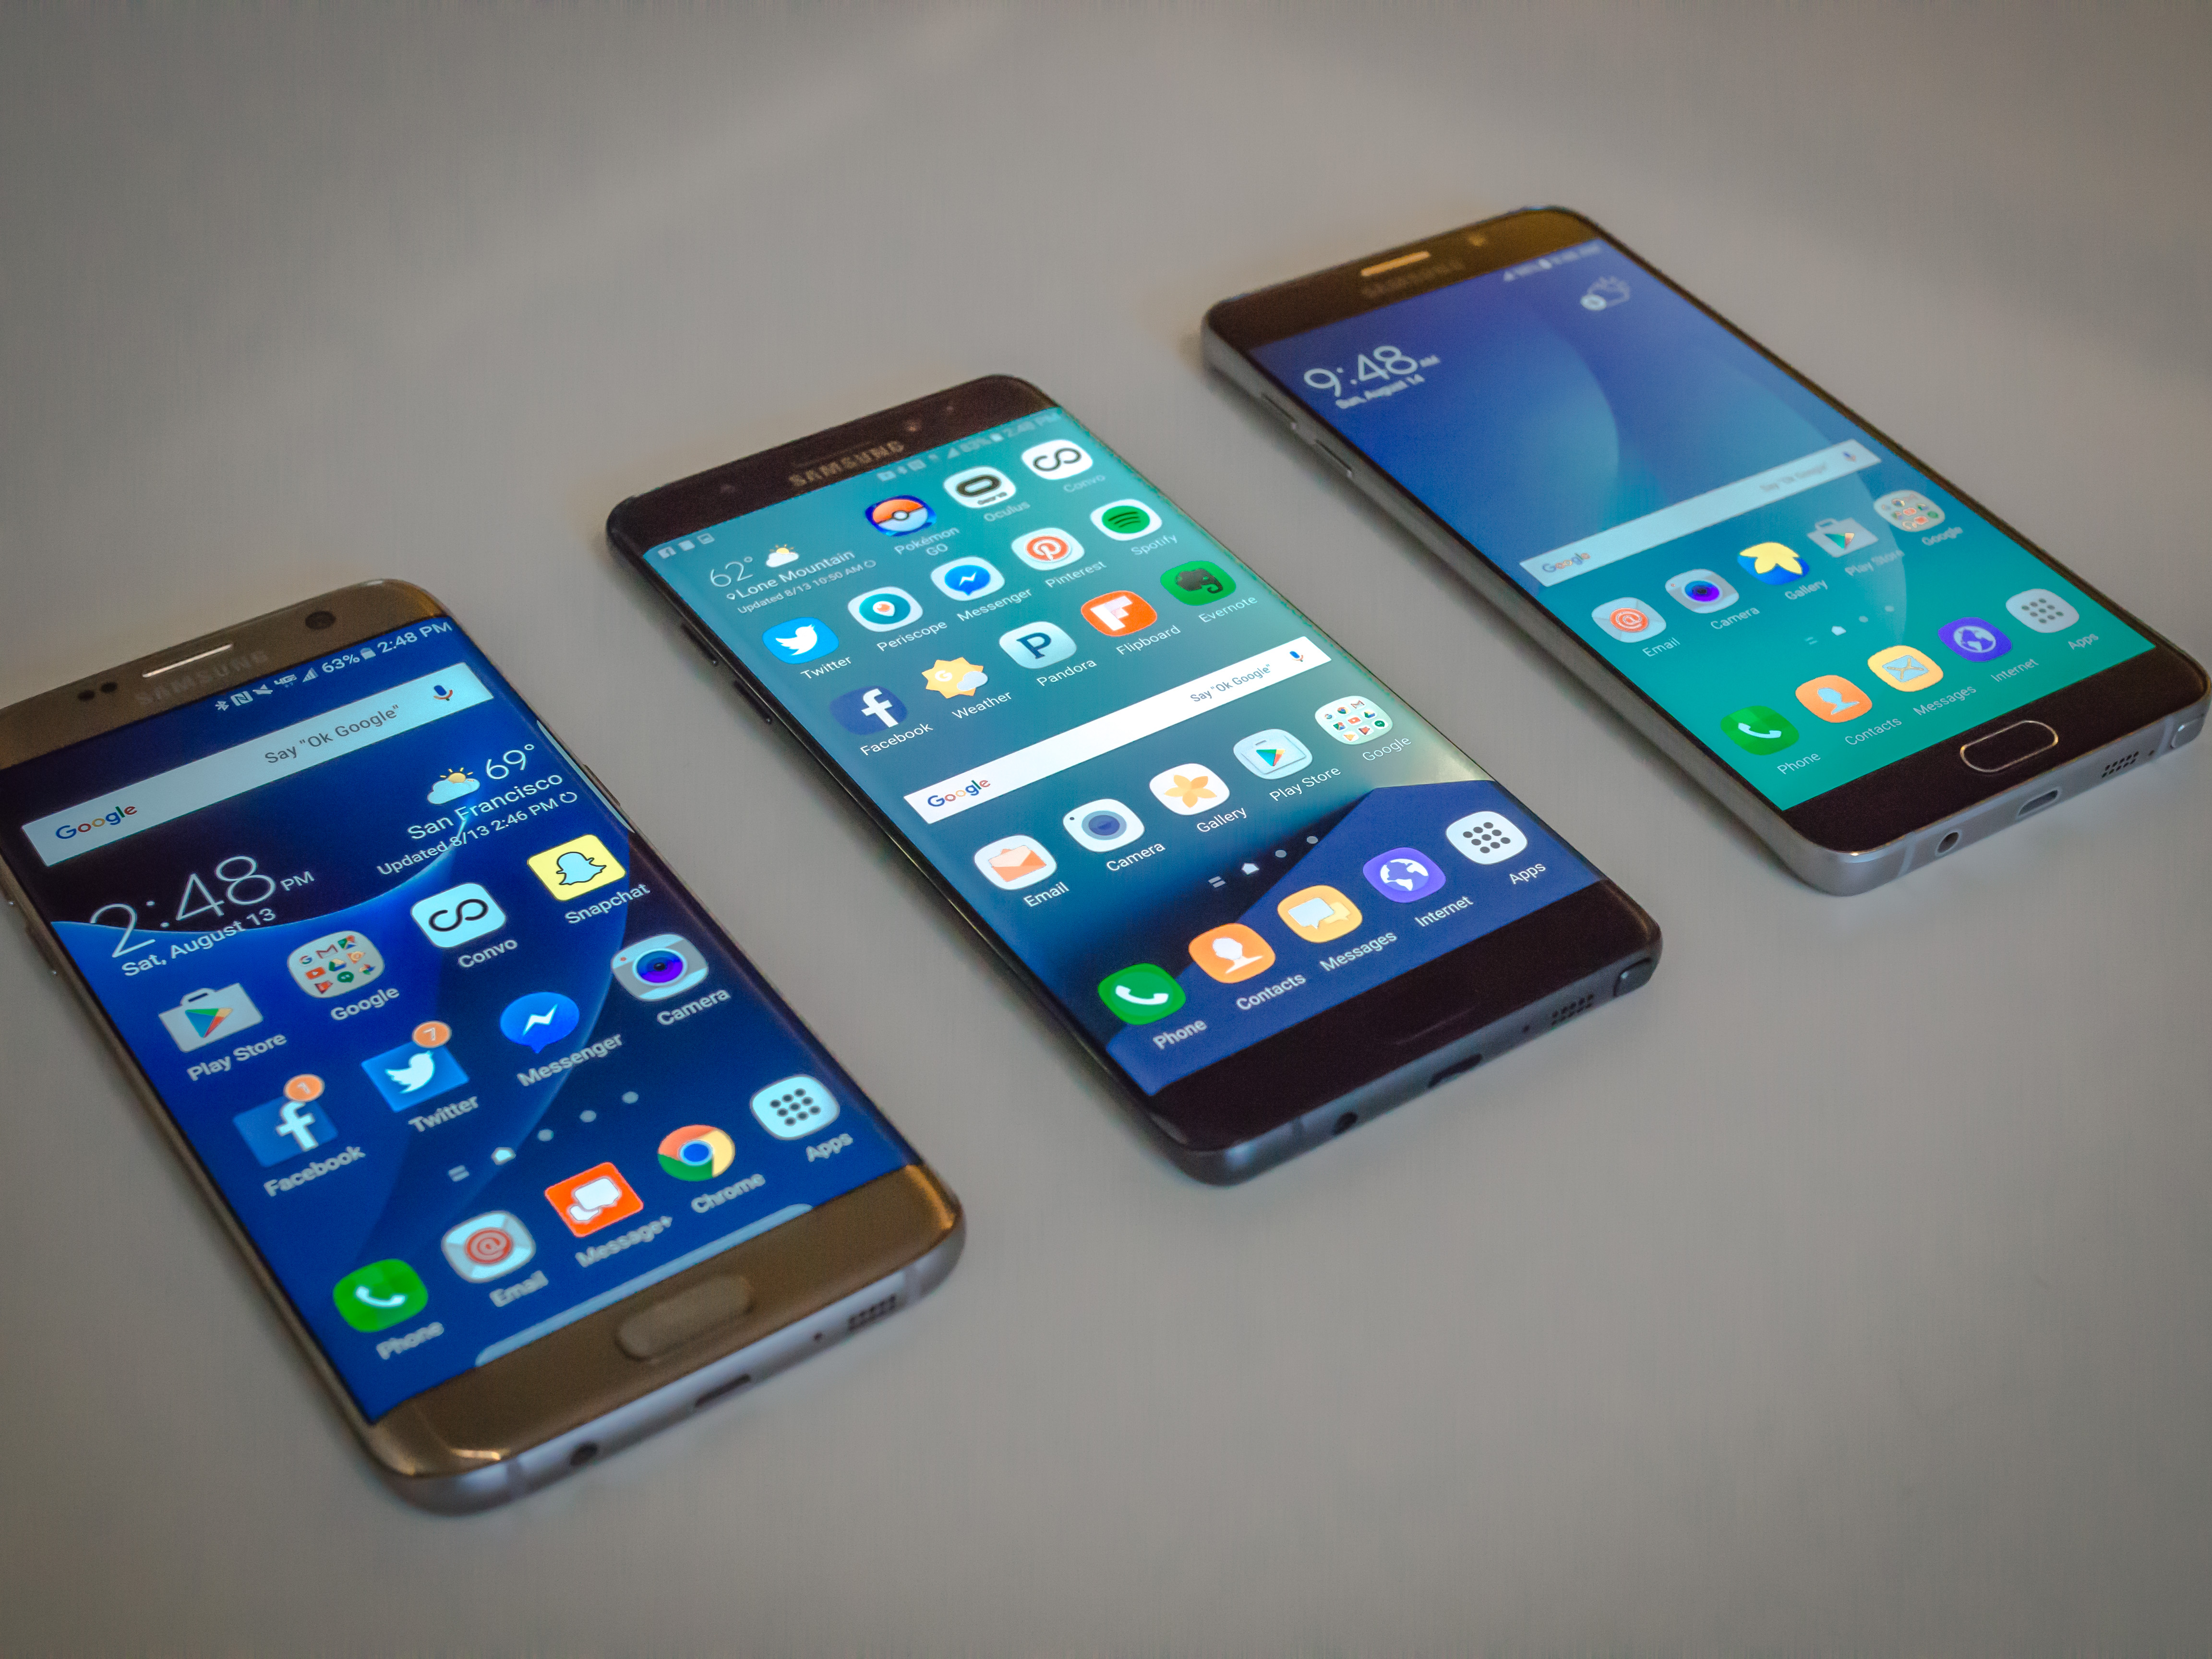 The Samsung Galaxy Note7 combines the best of the S7 series (left) with the stylus and productivity features of the Note5 (right).